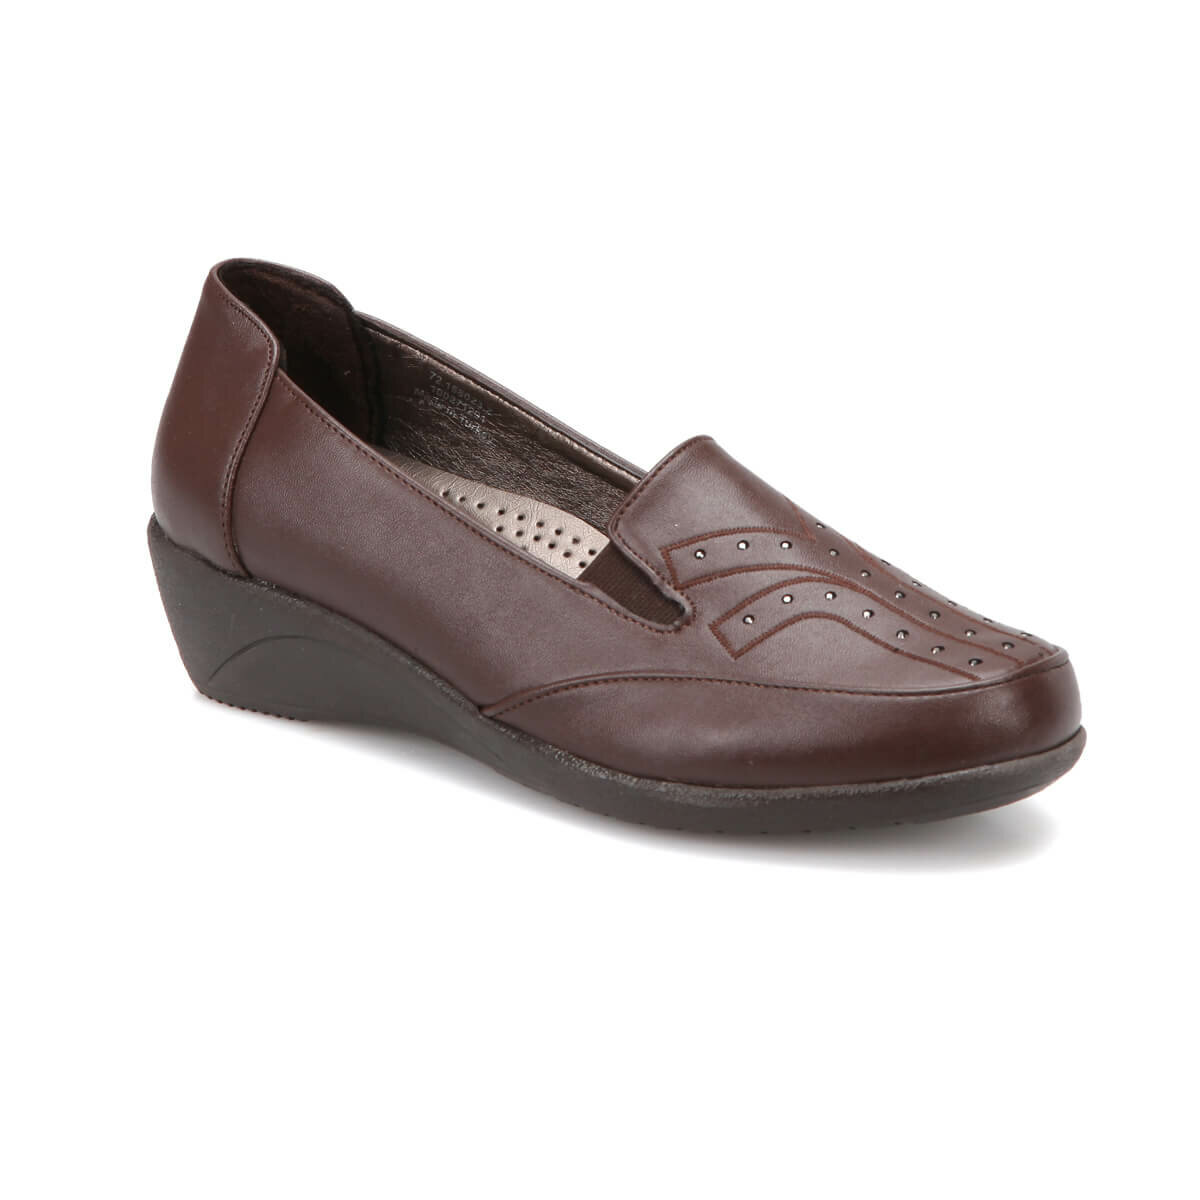 FLO 72.158023.Z Brown Women 'S Comfort Shoes Polaris